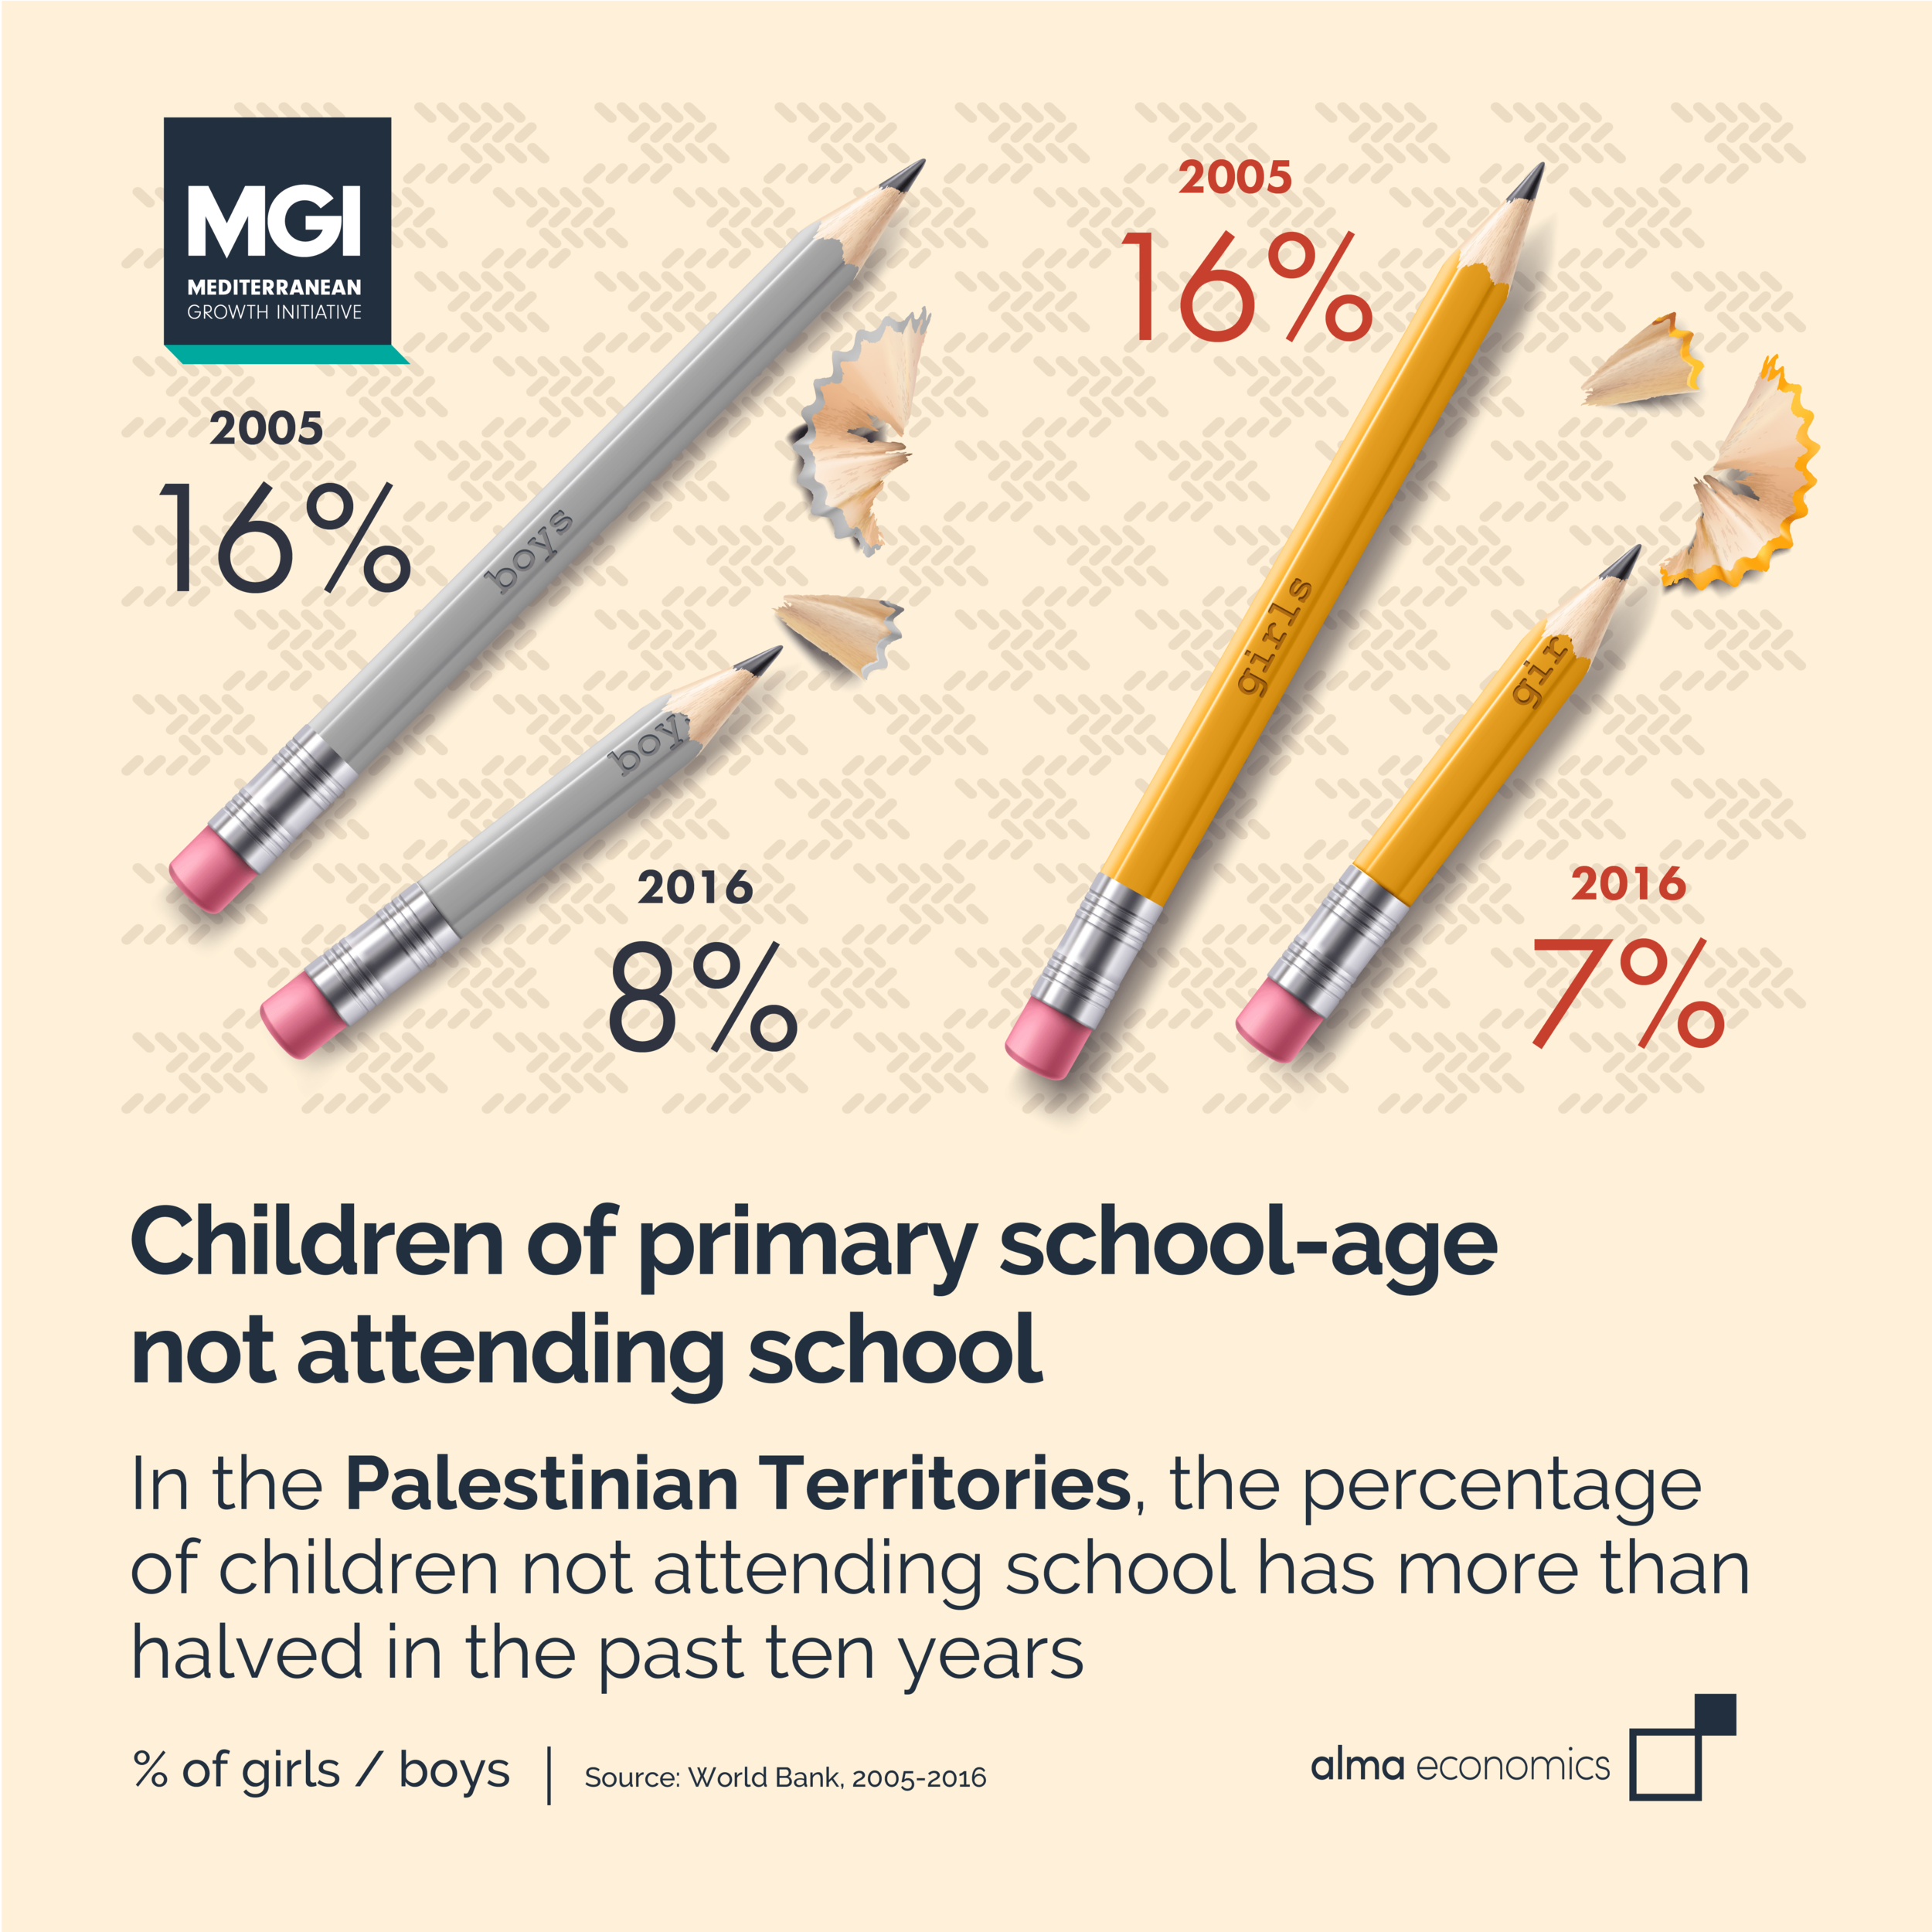 Children not attending school in the Palestinian Territories - In the past ten years, the percentage of children not attending school has more than halved in the Palestinian Territories